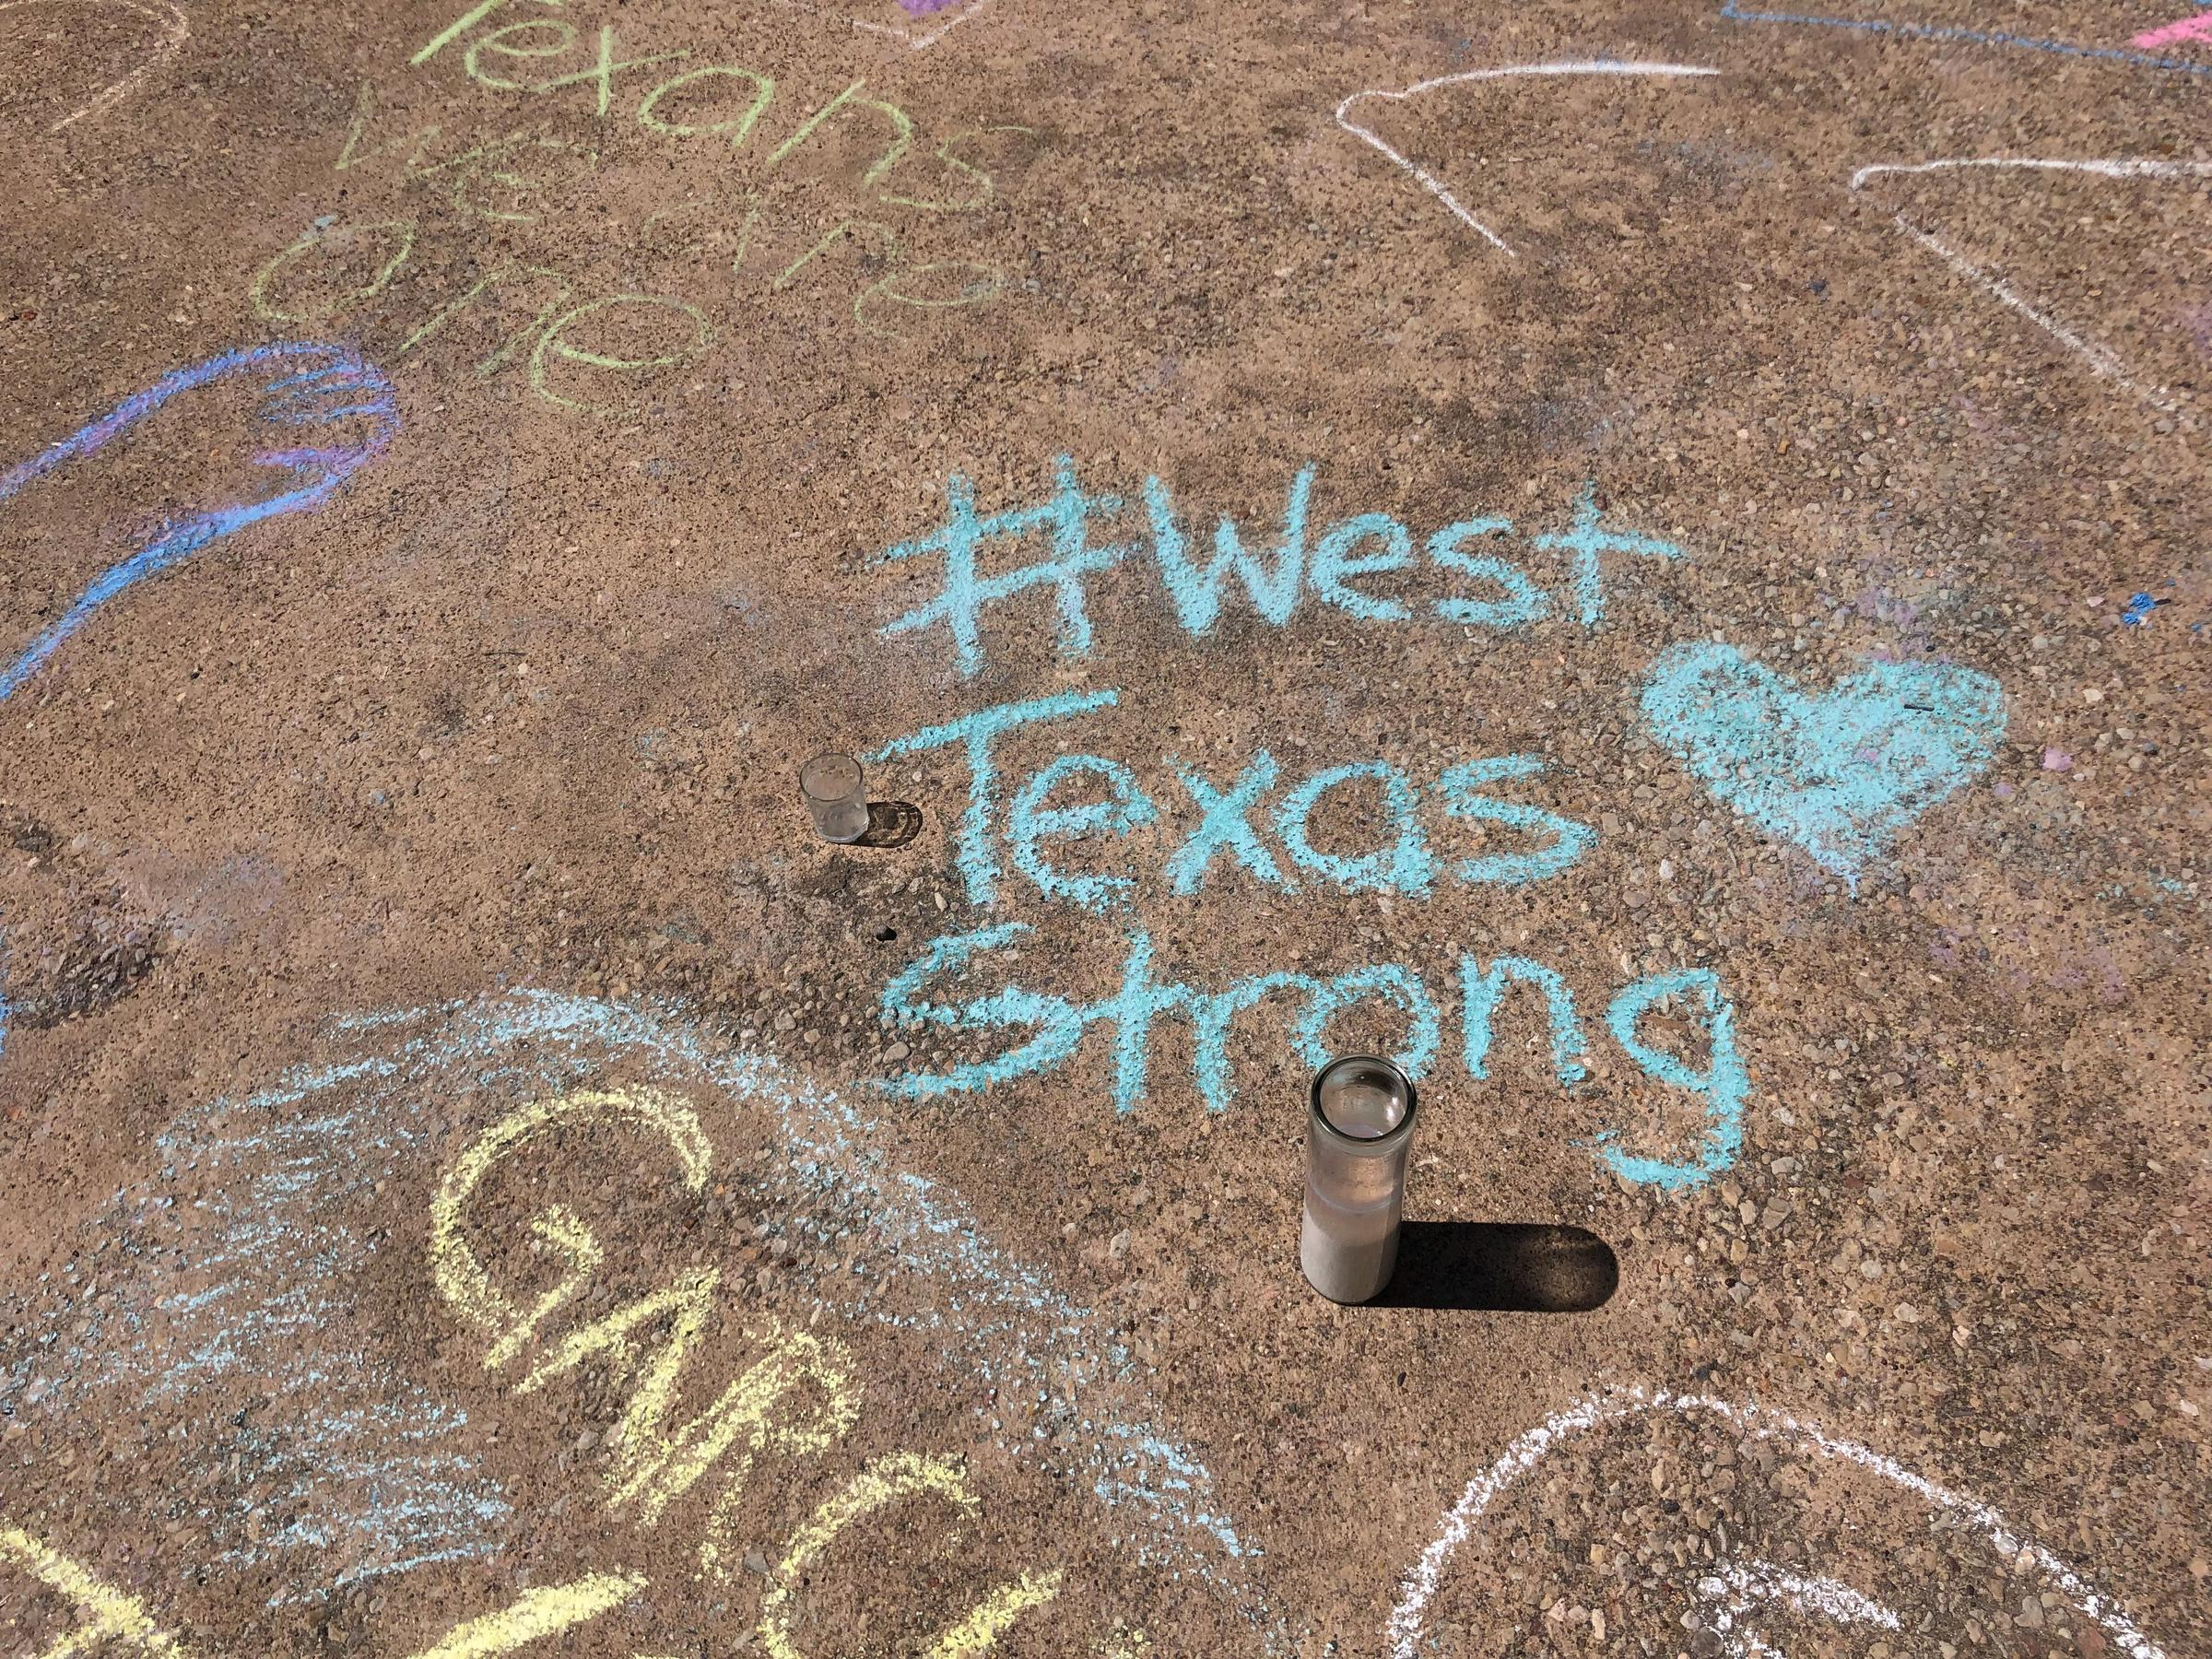 The Latest On The Victims In West Texas Attack | KUT